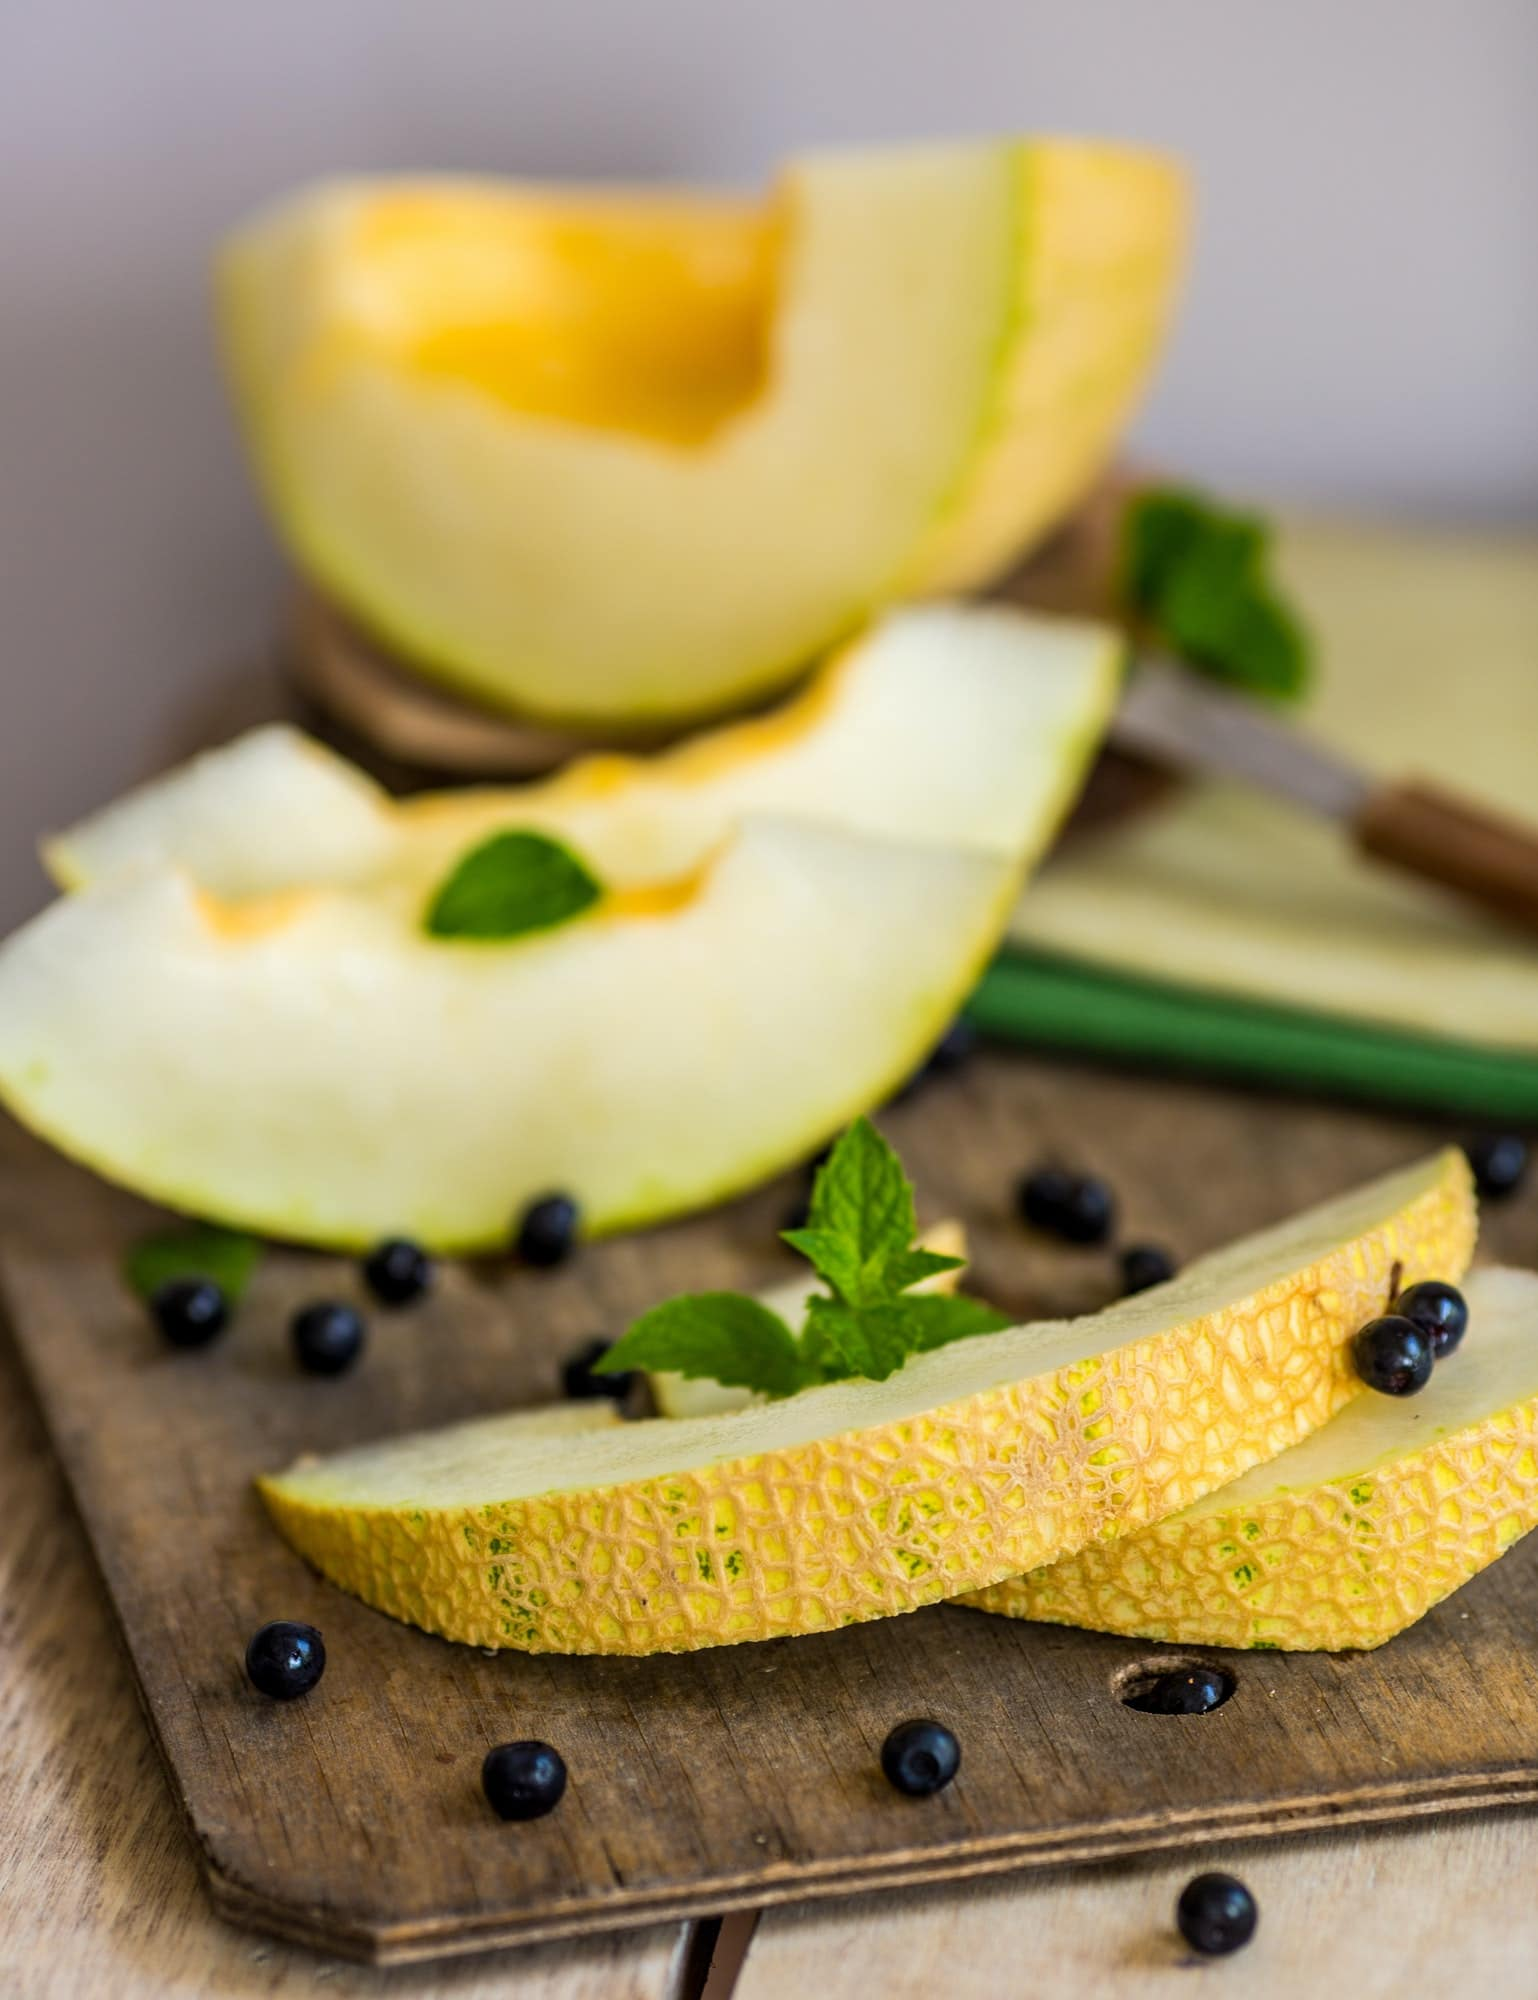 fresh melon and blueberries on a wooden cutting board. selective focus